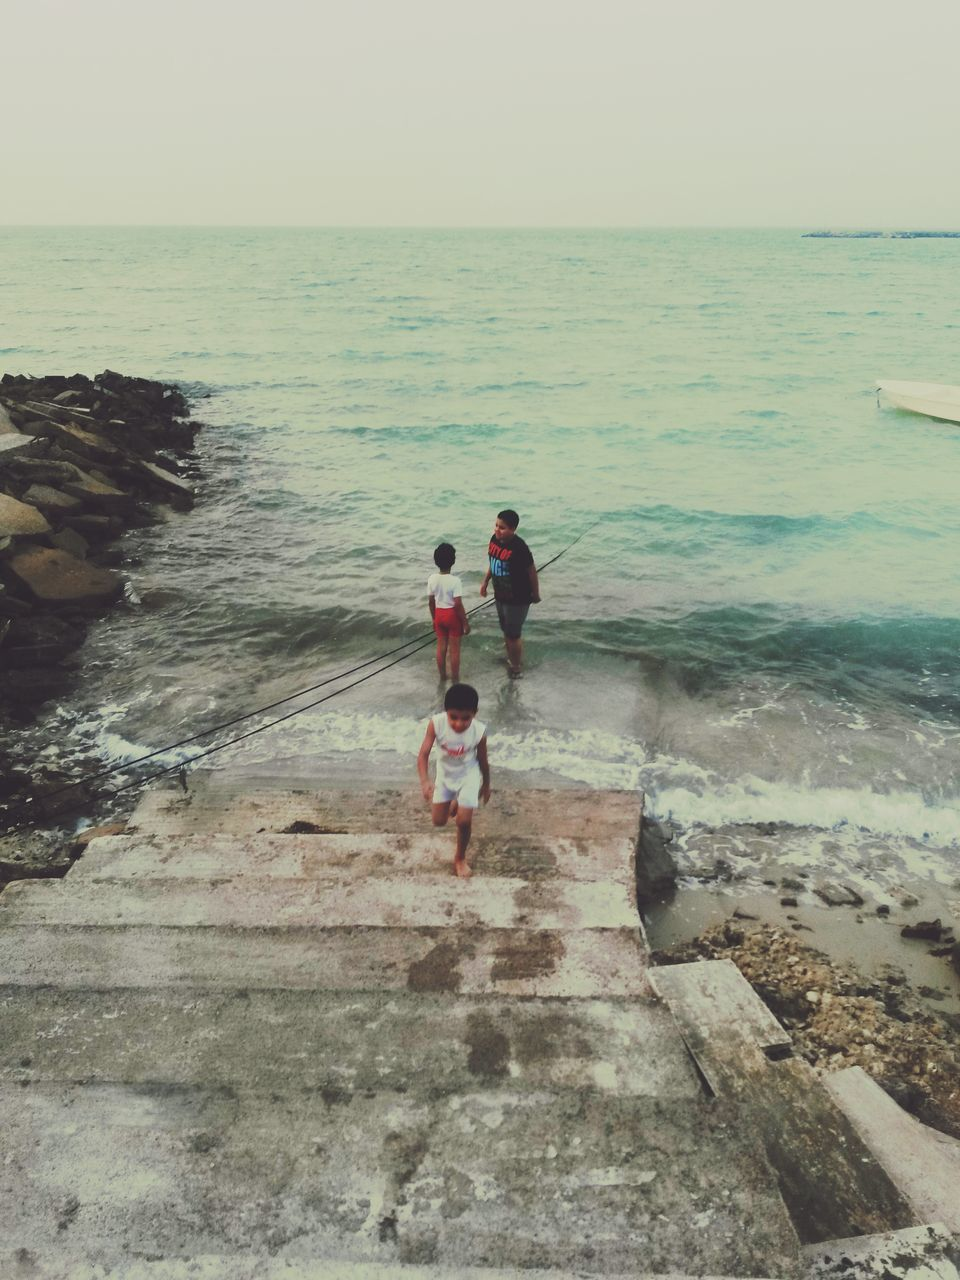 sea, water, horizon over water, beach, real people, two people, nature, outdoors, scenics, beauty in nature, rear view, sky, day, men, leisure activity, full length, clear sky, standing, togetherness, vacations, lifestyles, people